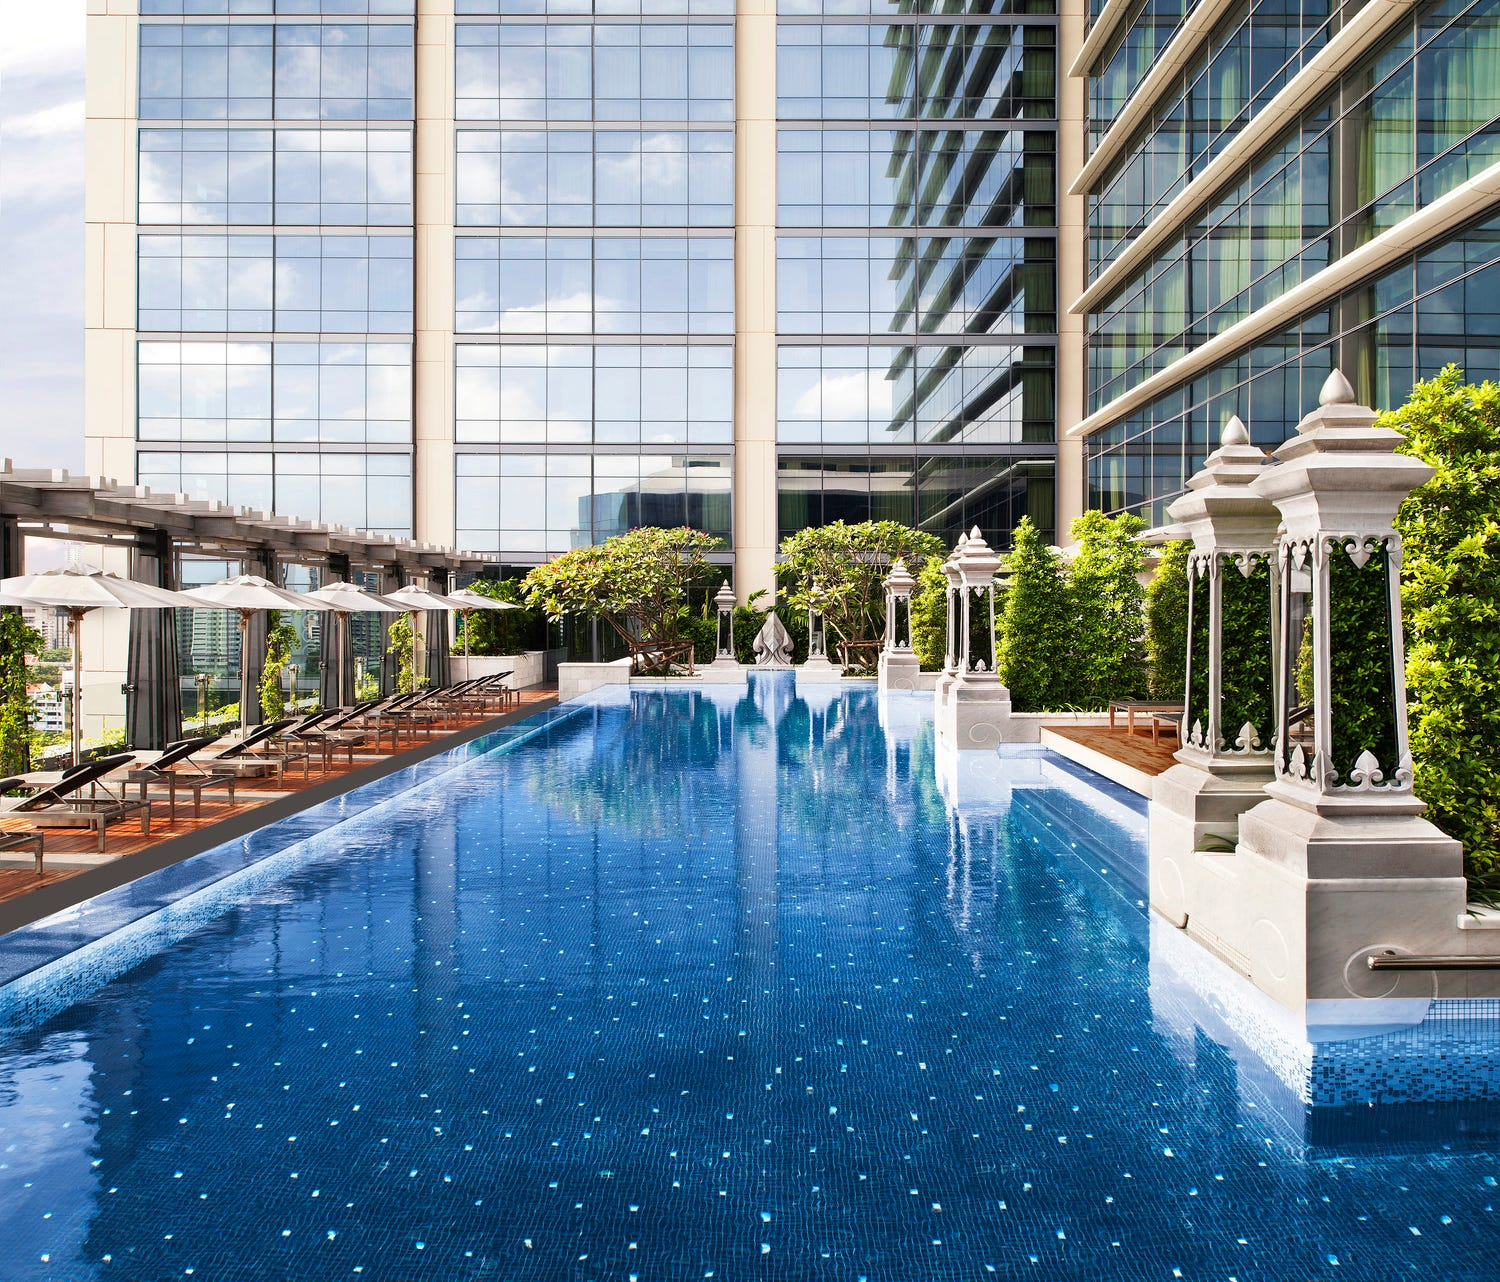 The St. Regis Bangkok is a new addition to the Forbes Five-Star hotel list.